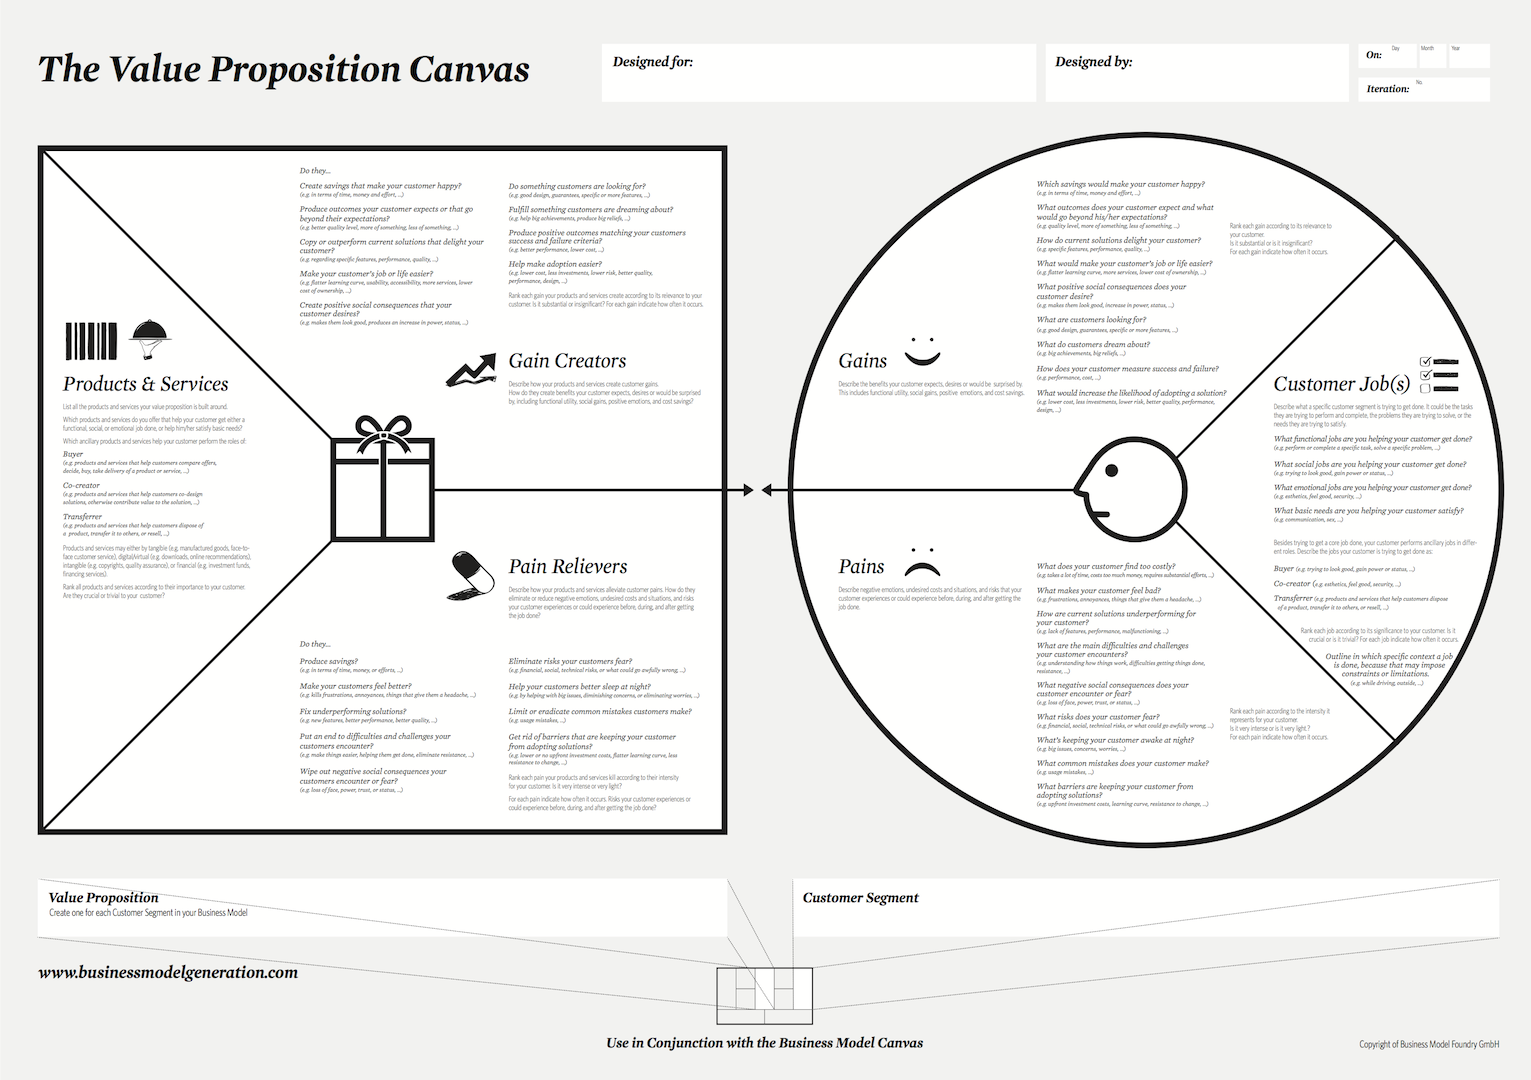 5 Herramientas Esenciales Para Identificar Las Necesidades De Tus Clientes moreover A Mile Wide And An Inch Deep additionally How to use value proposition 1 additionally Business Model Generation A Handbook For Visionaries Game Changers And Challengers likewise Business Model Canvas Templates. on value proposition canvas